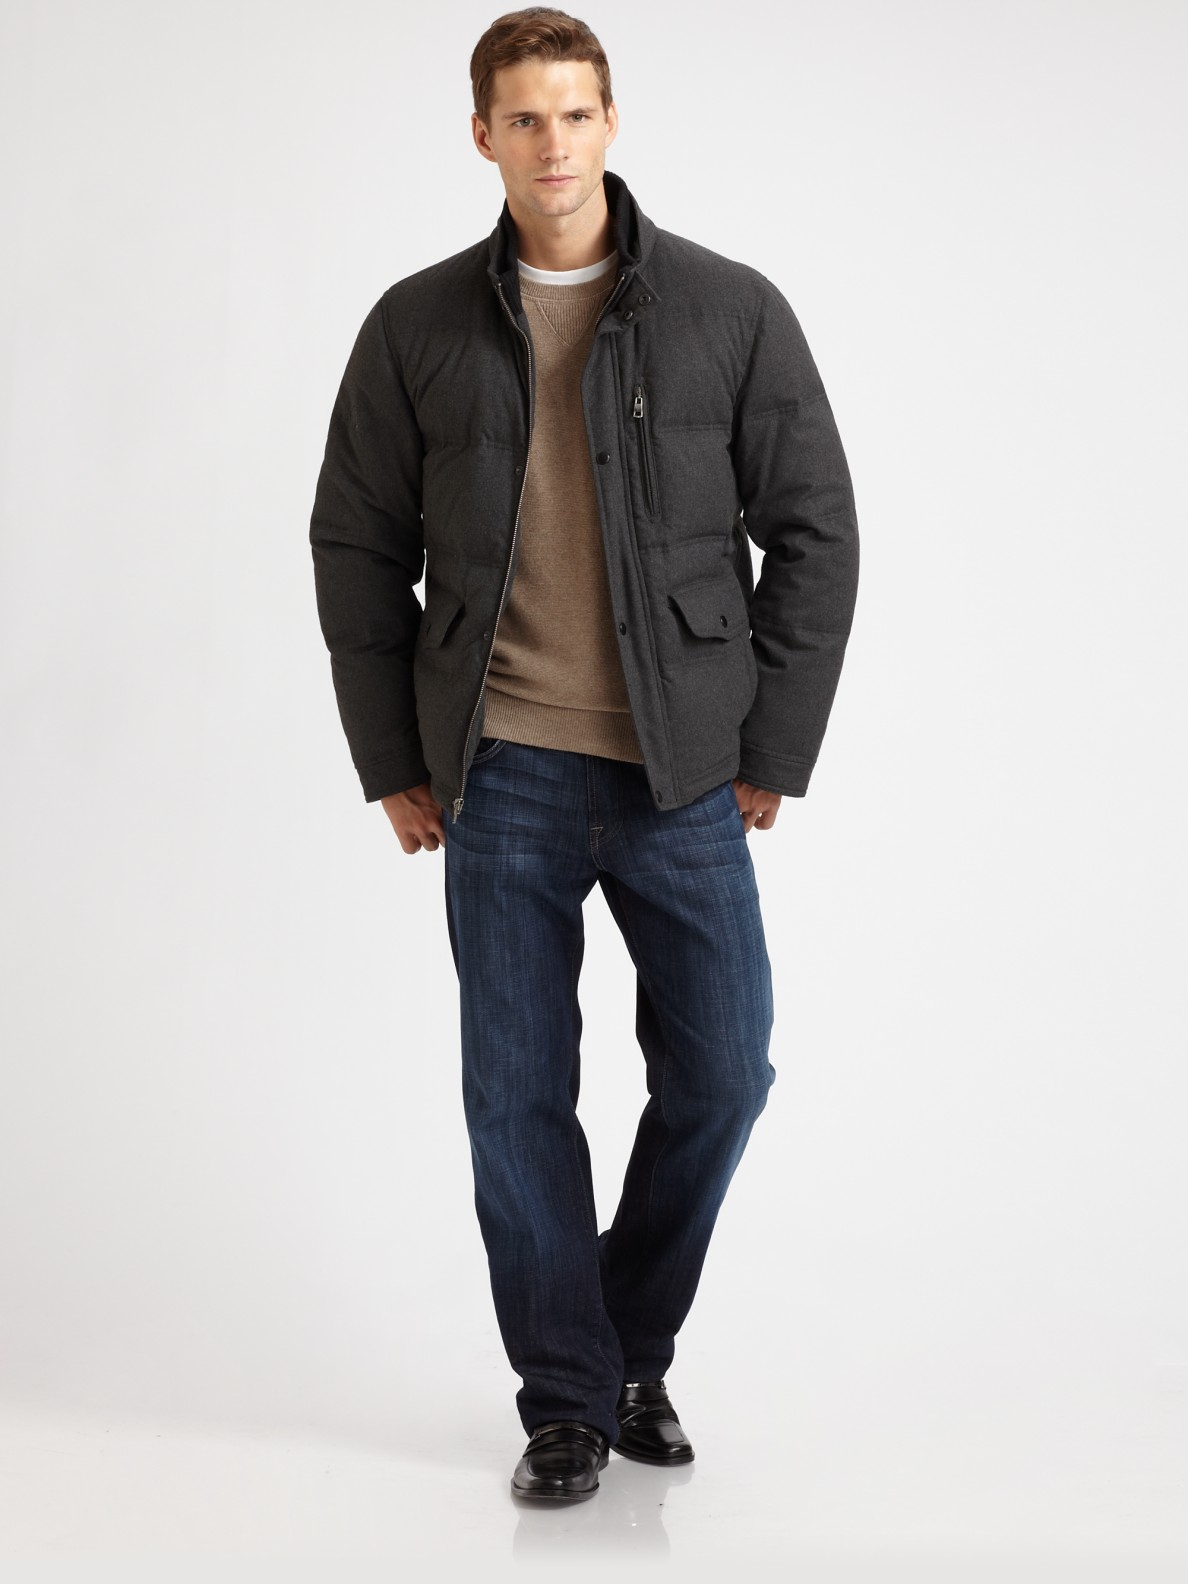 Cole Haan Flannel Down Jacket In Gray For Men Charcoal